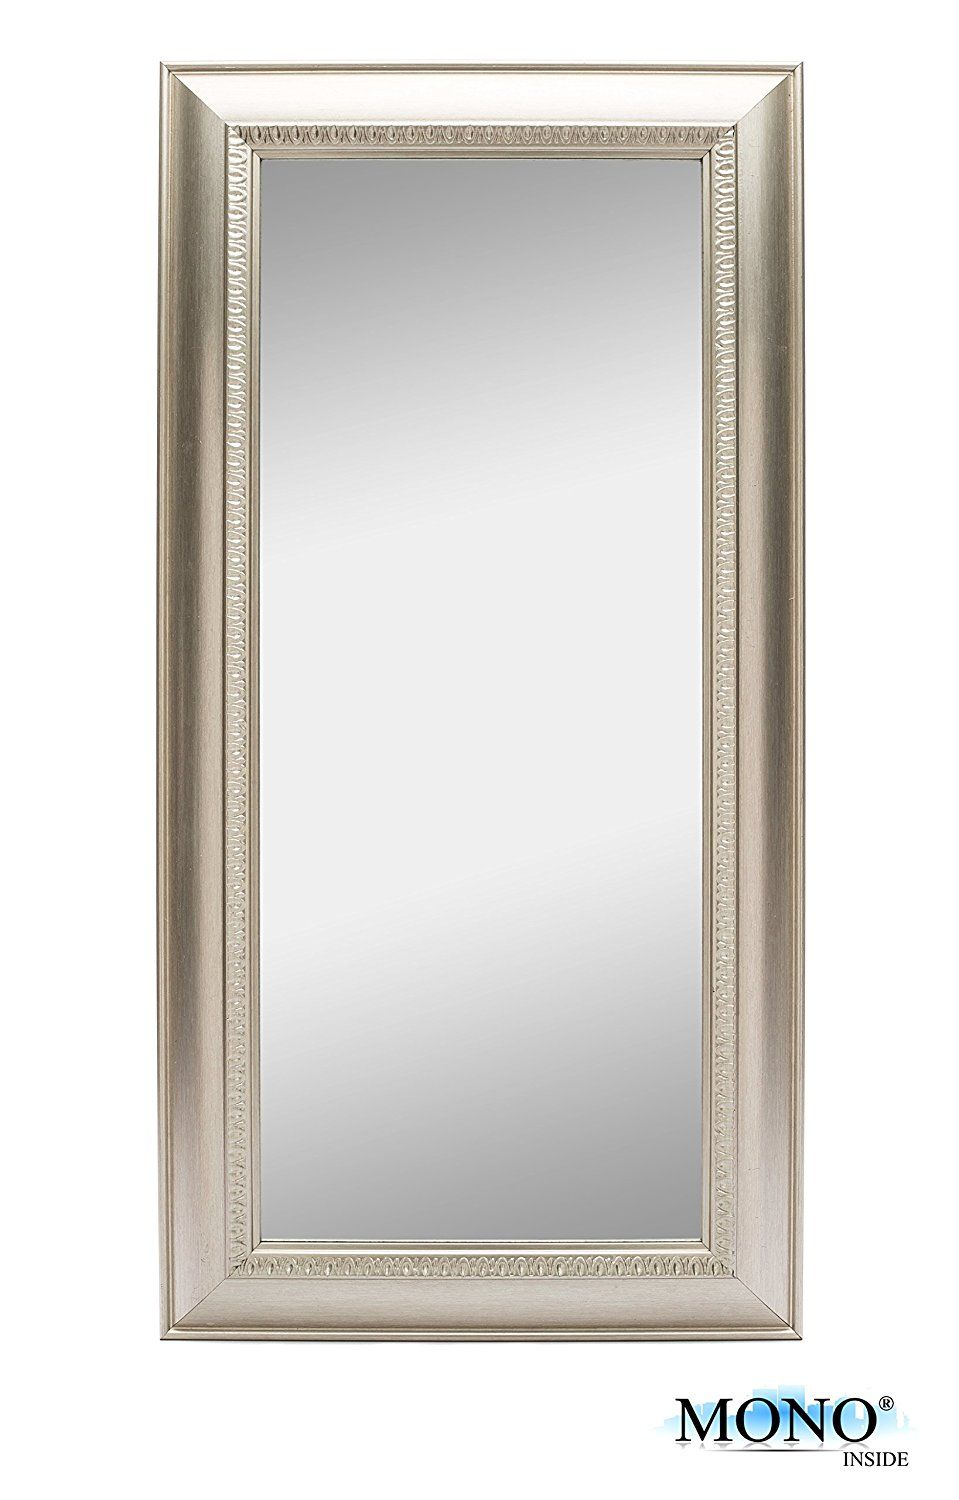 Amazon Com Monoinside Framed Decorative Wall Mounted Mirror Classic And Vintage Style Plastic Frame 24 Quot Wall Mounted Mirror Mirror Silver Wall Mirror